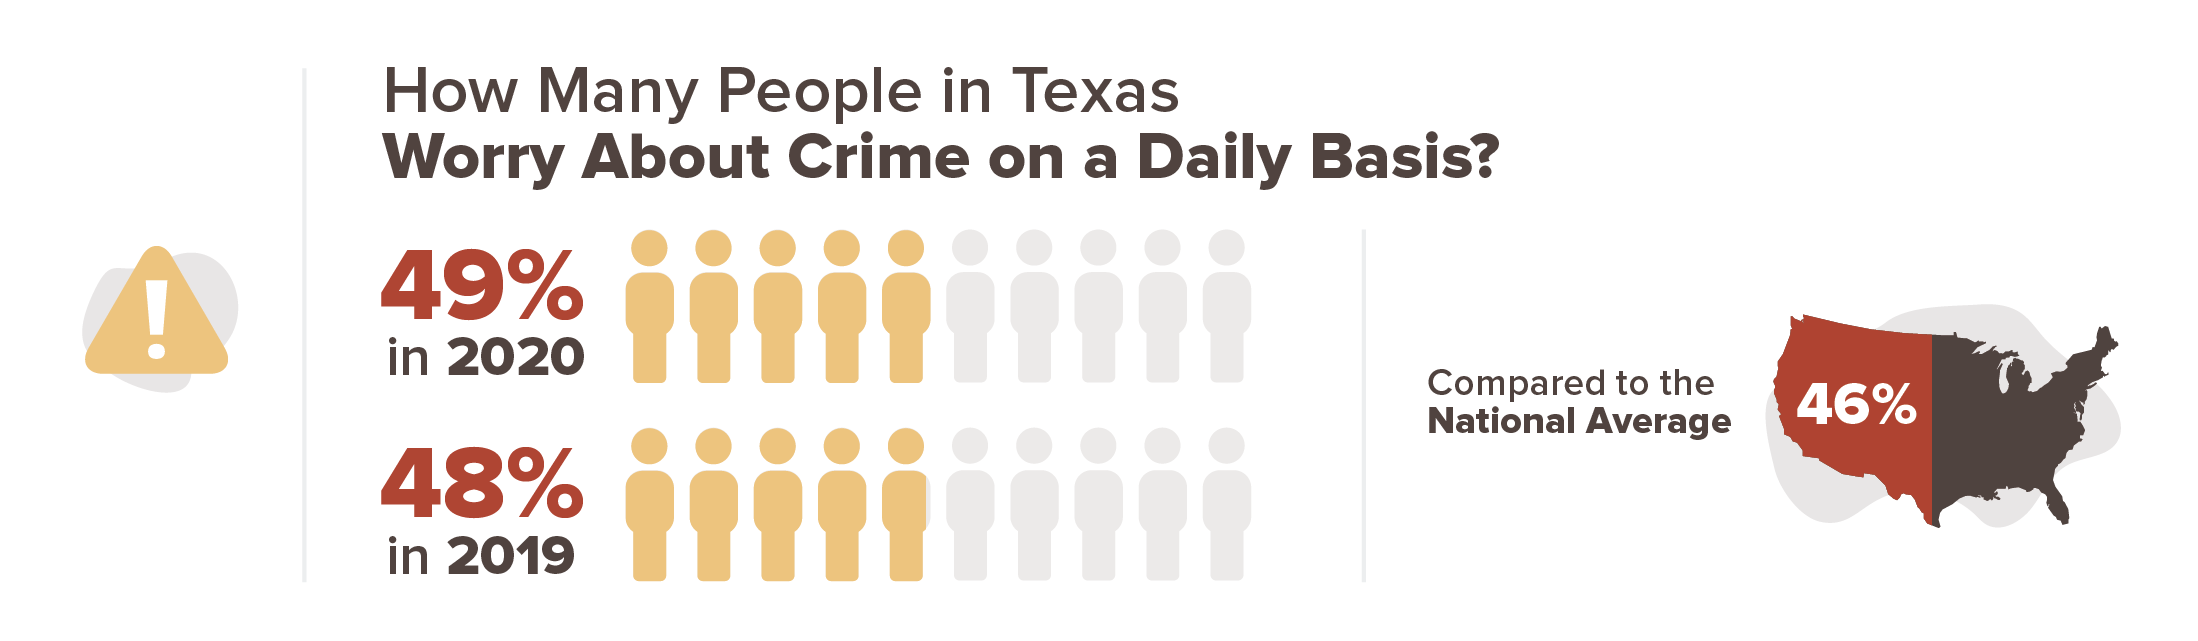 Texas crime concern infographic